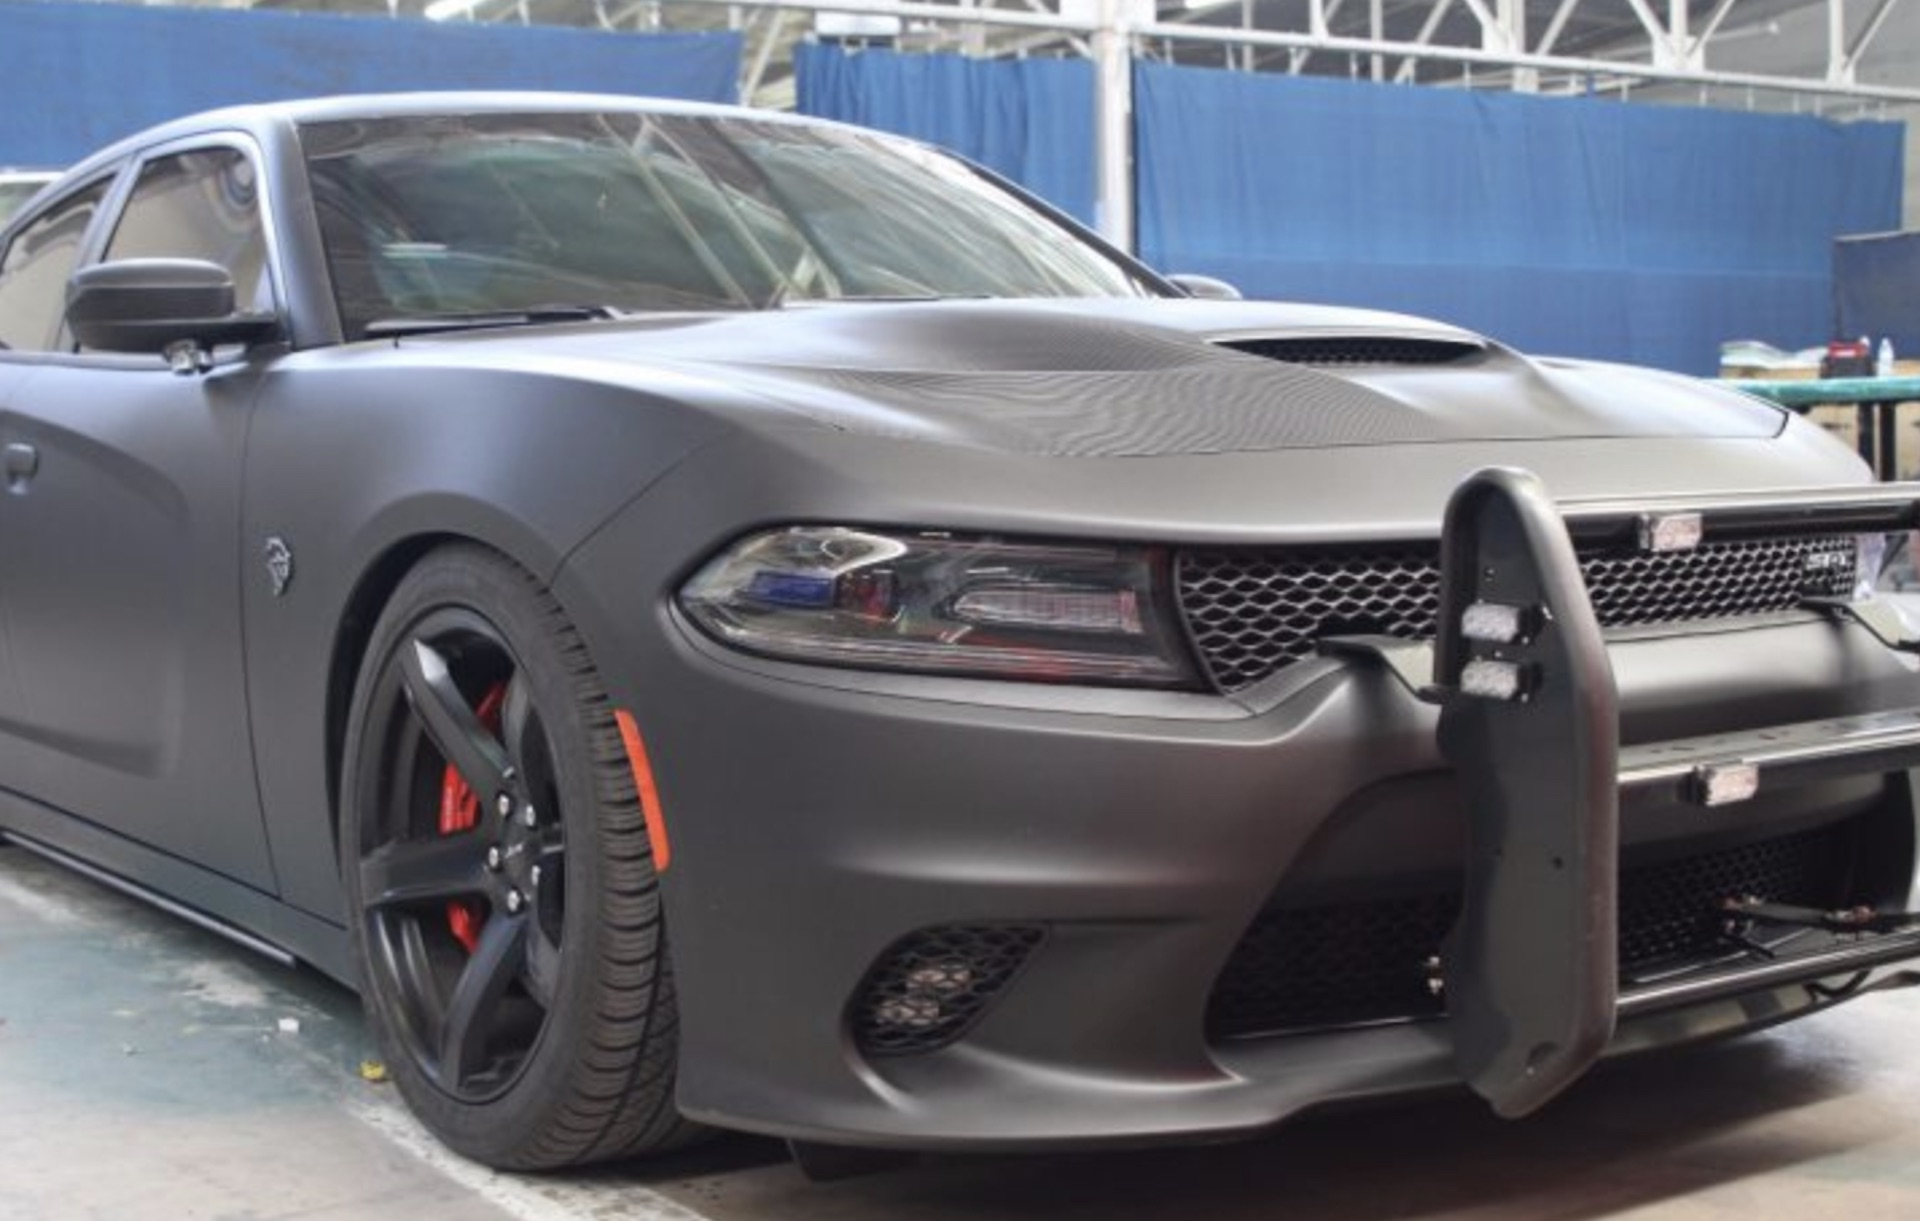 Police Can Now Buy An Armored Awd Dodge Charger Srt Hellcat